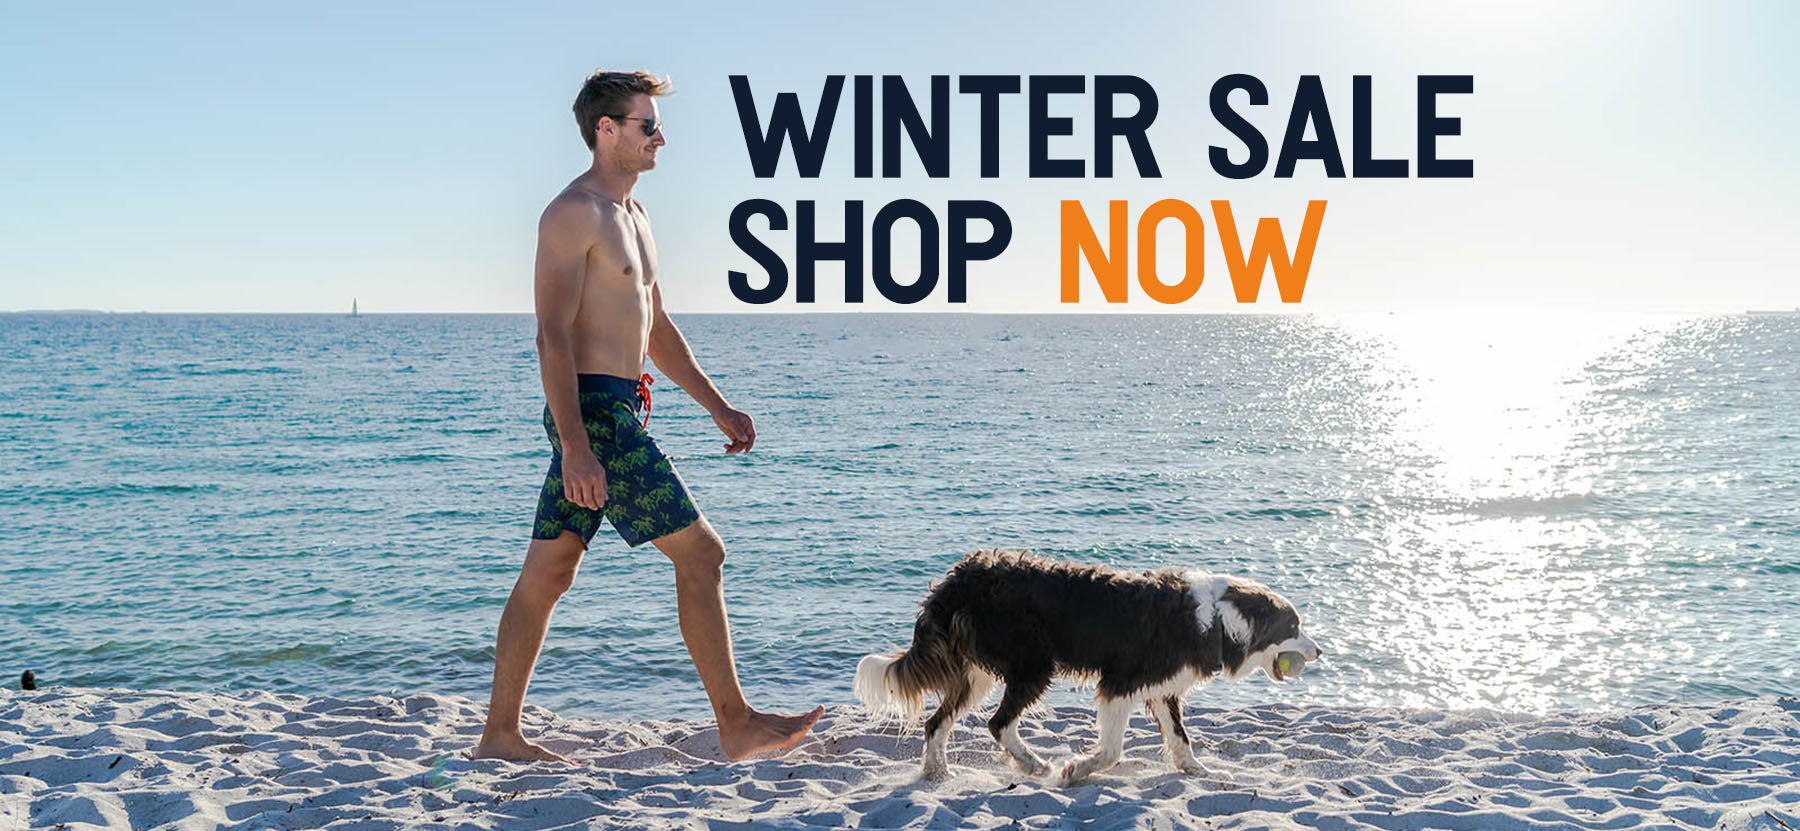 South Beach Boardies made from recycled plastic bottles, winter sale